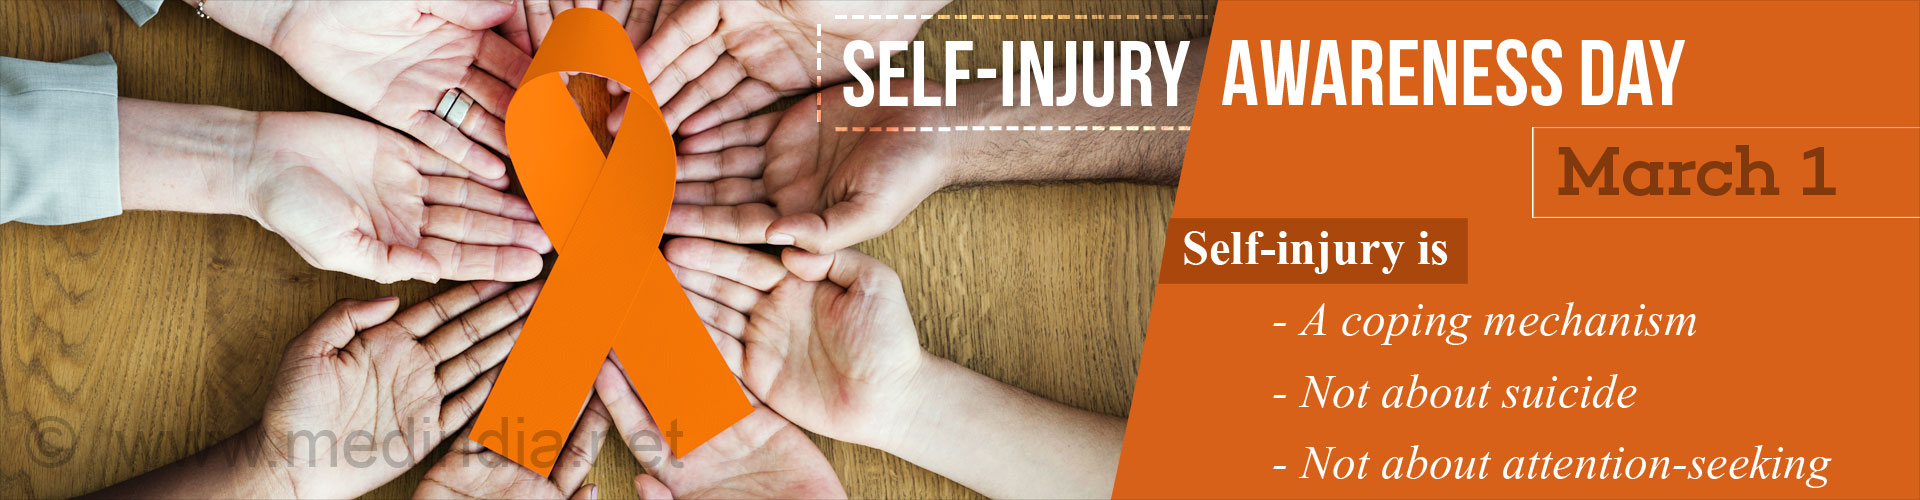 Self-Injury Awareness Day: March 1